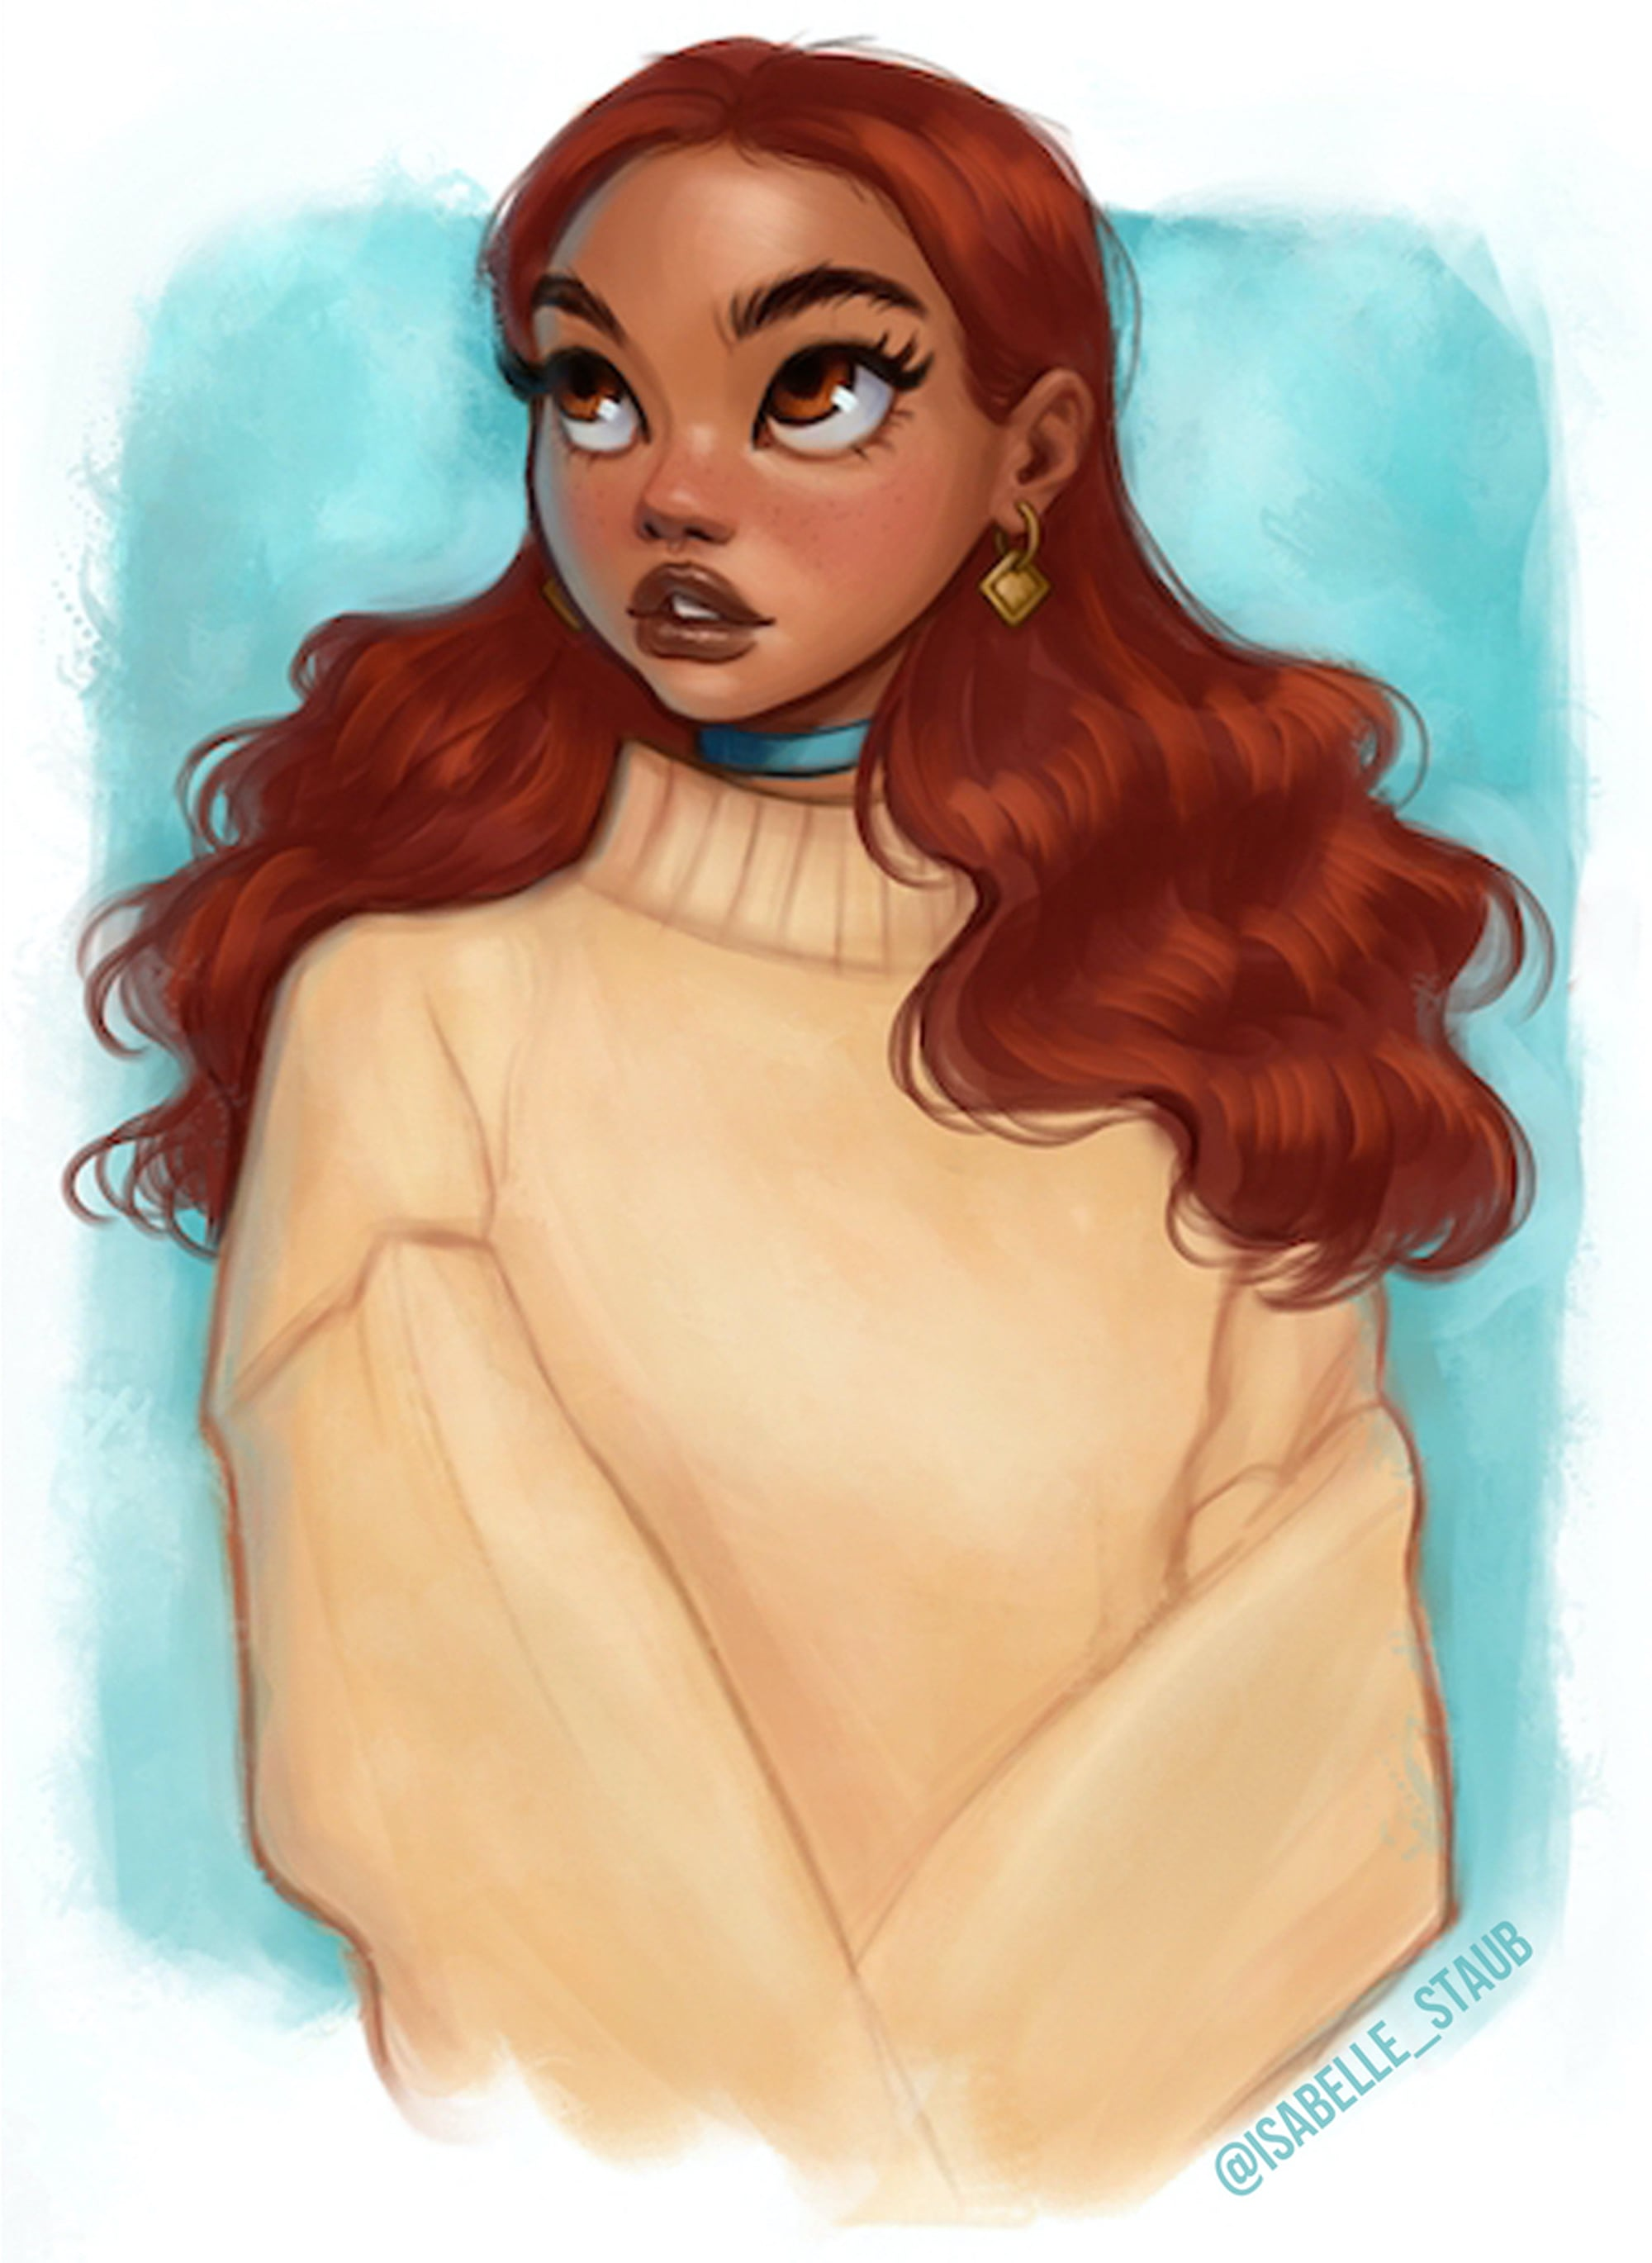 Lady From Lady And The Tramp As A Human This Artist Transforms Disney Animals Into Humans Better Than A Fairy Godmother S Spell Popsugar Smart Living Photo 3